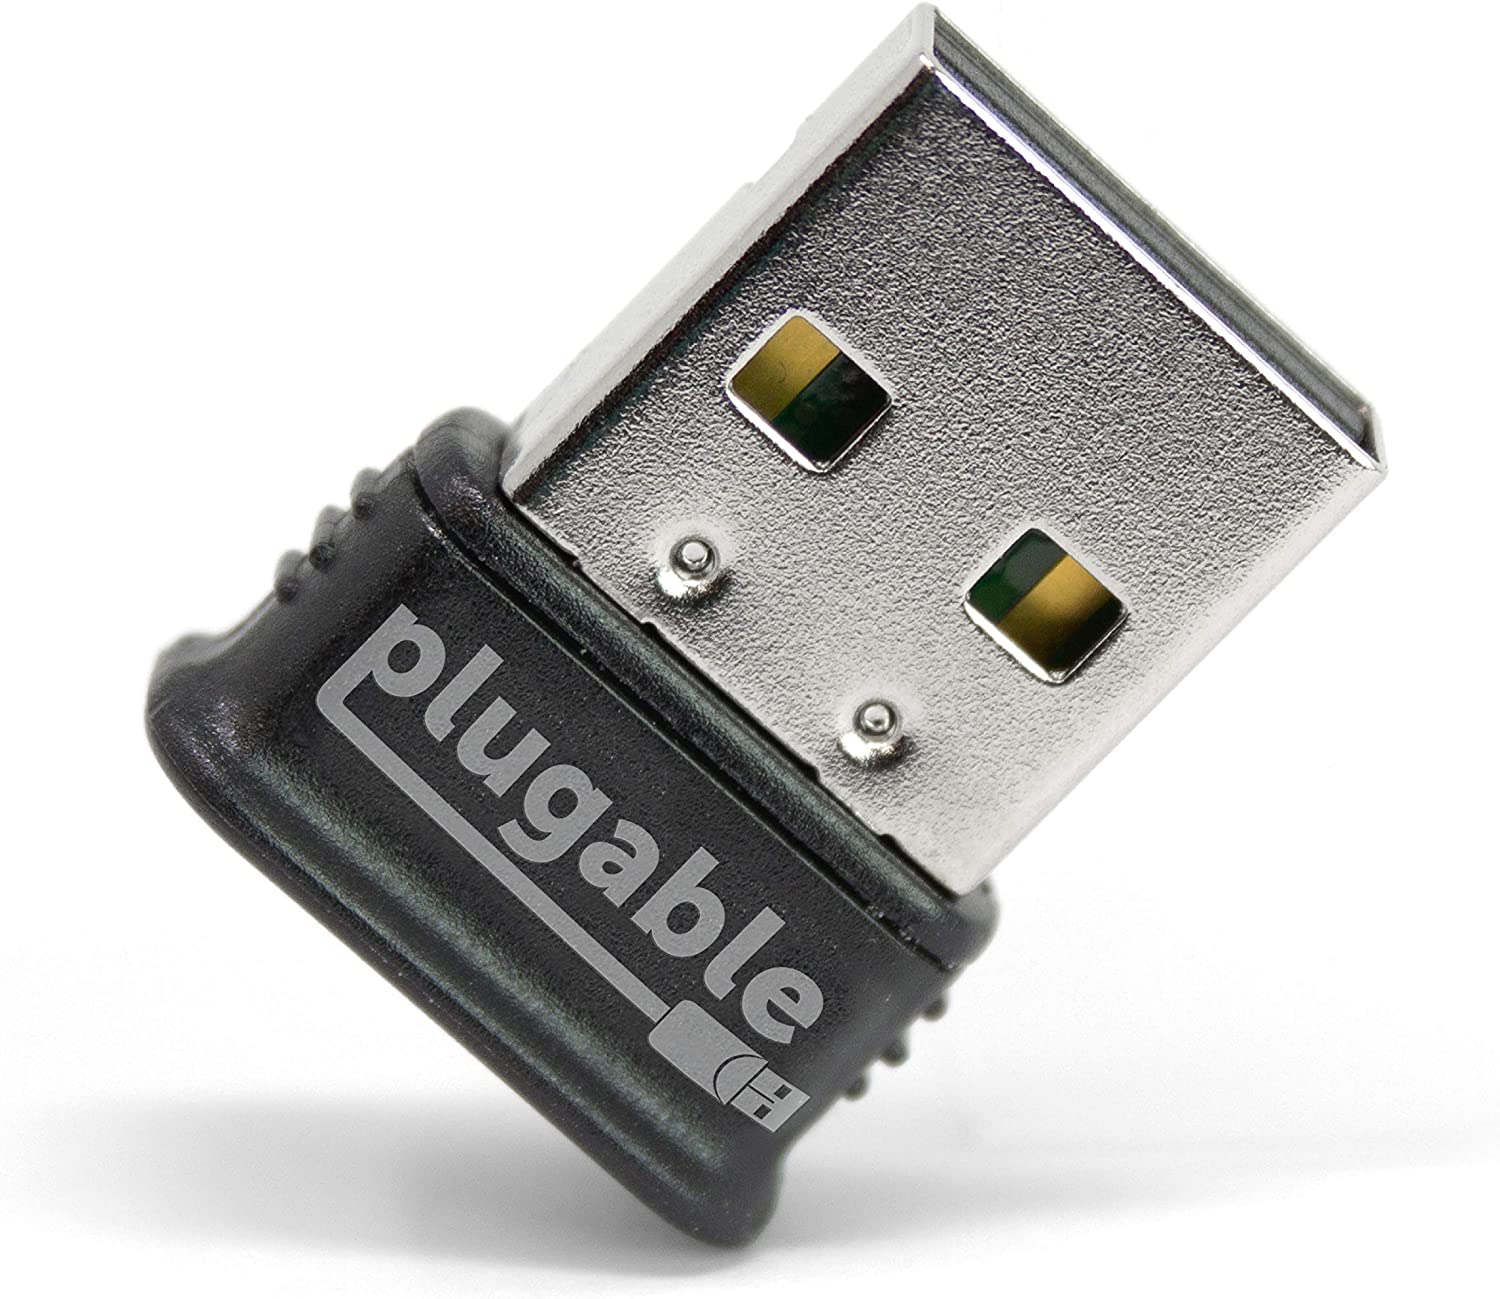 Plugable USB Bluetooth 4.0 Low Energy Micro Adapter (Compatible with Windows 10, 8.1, 8, 7, Raspberry Pi, Linux Compatible, Classic Bluetooth, and ...